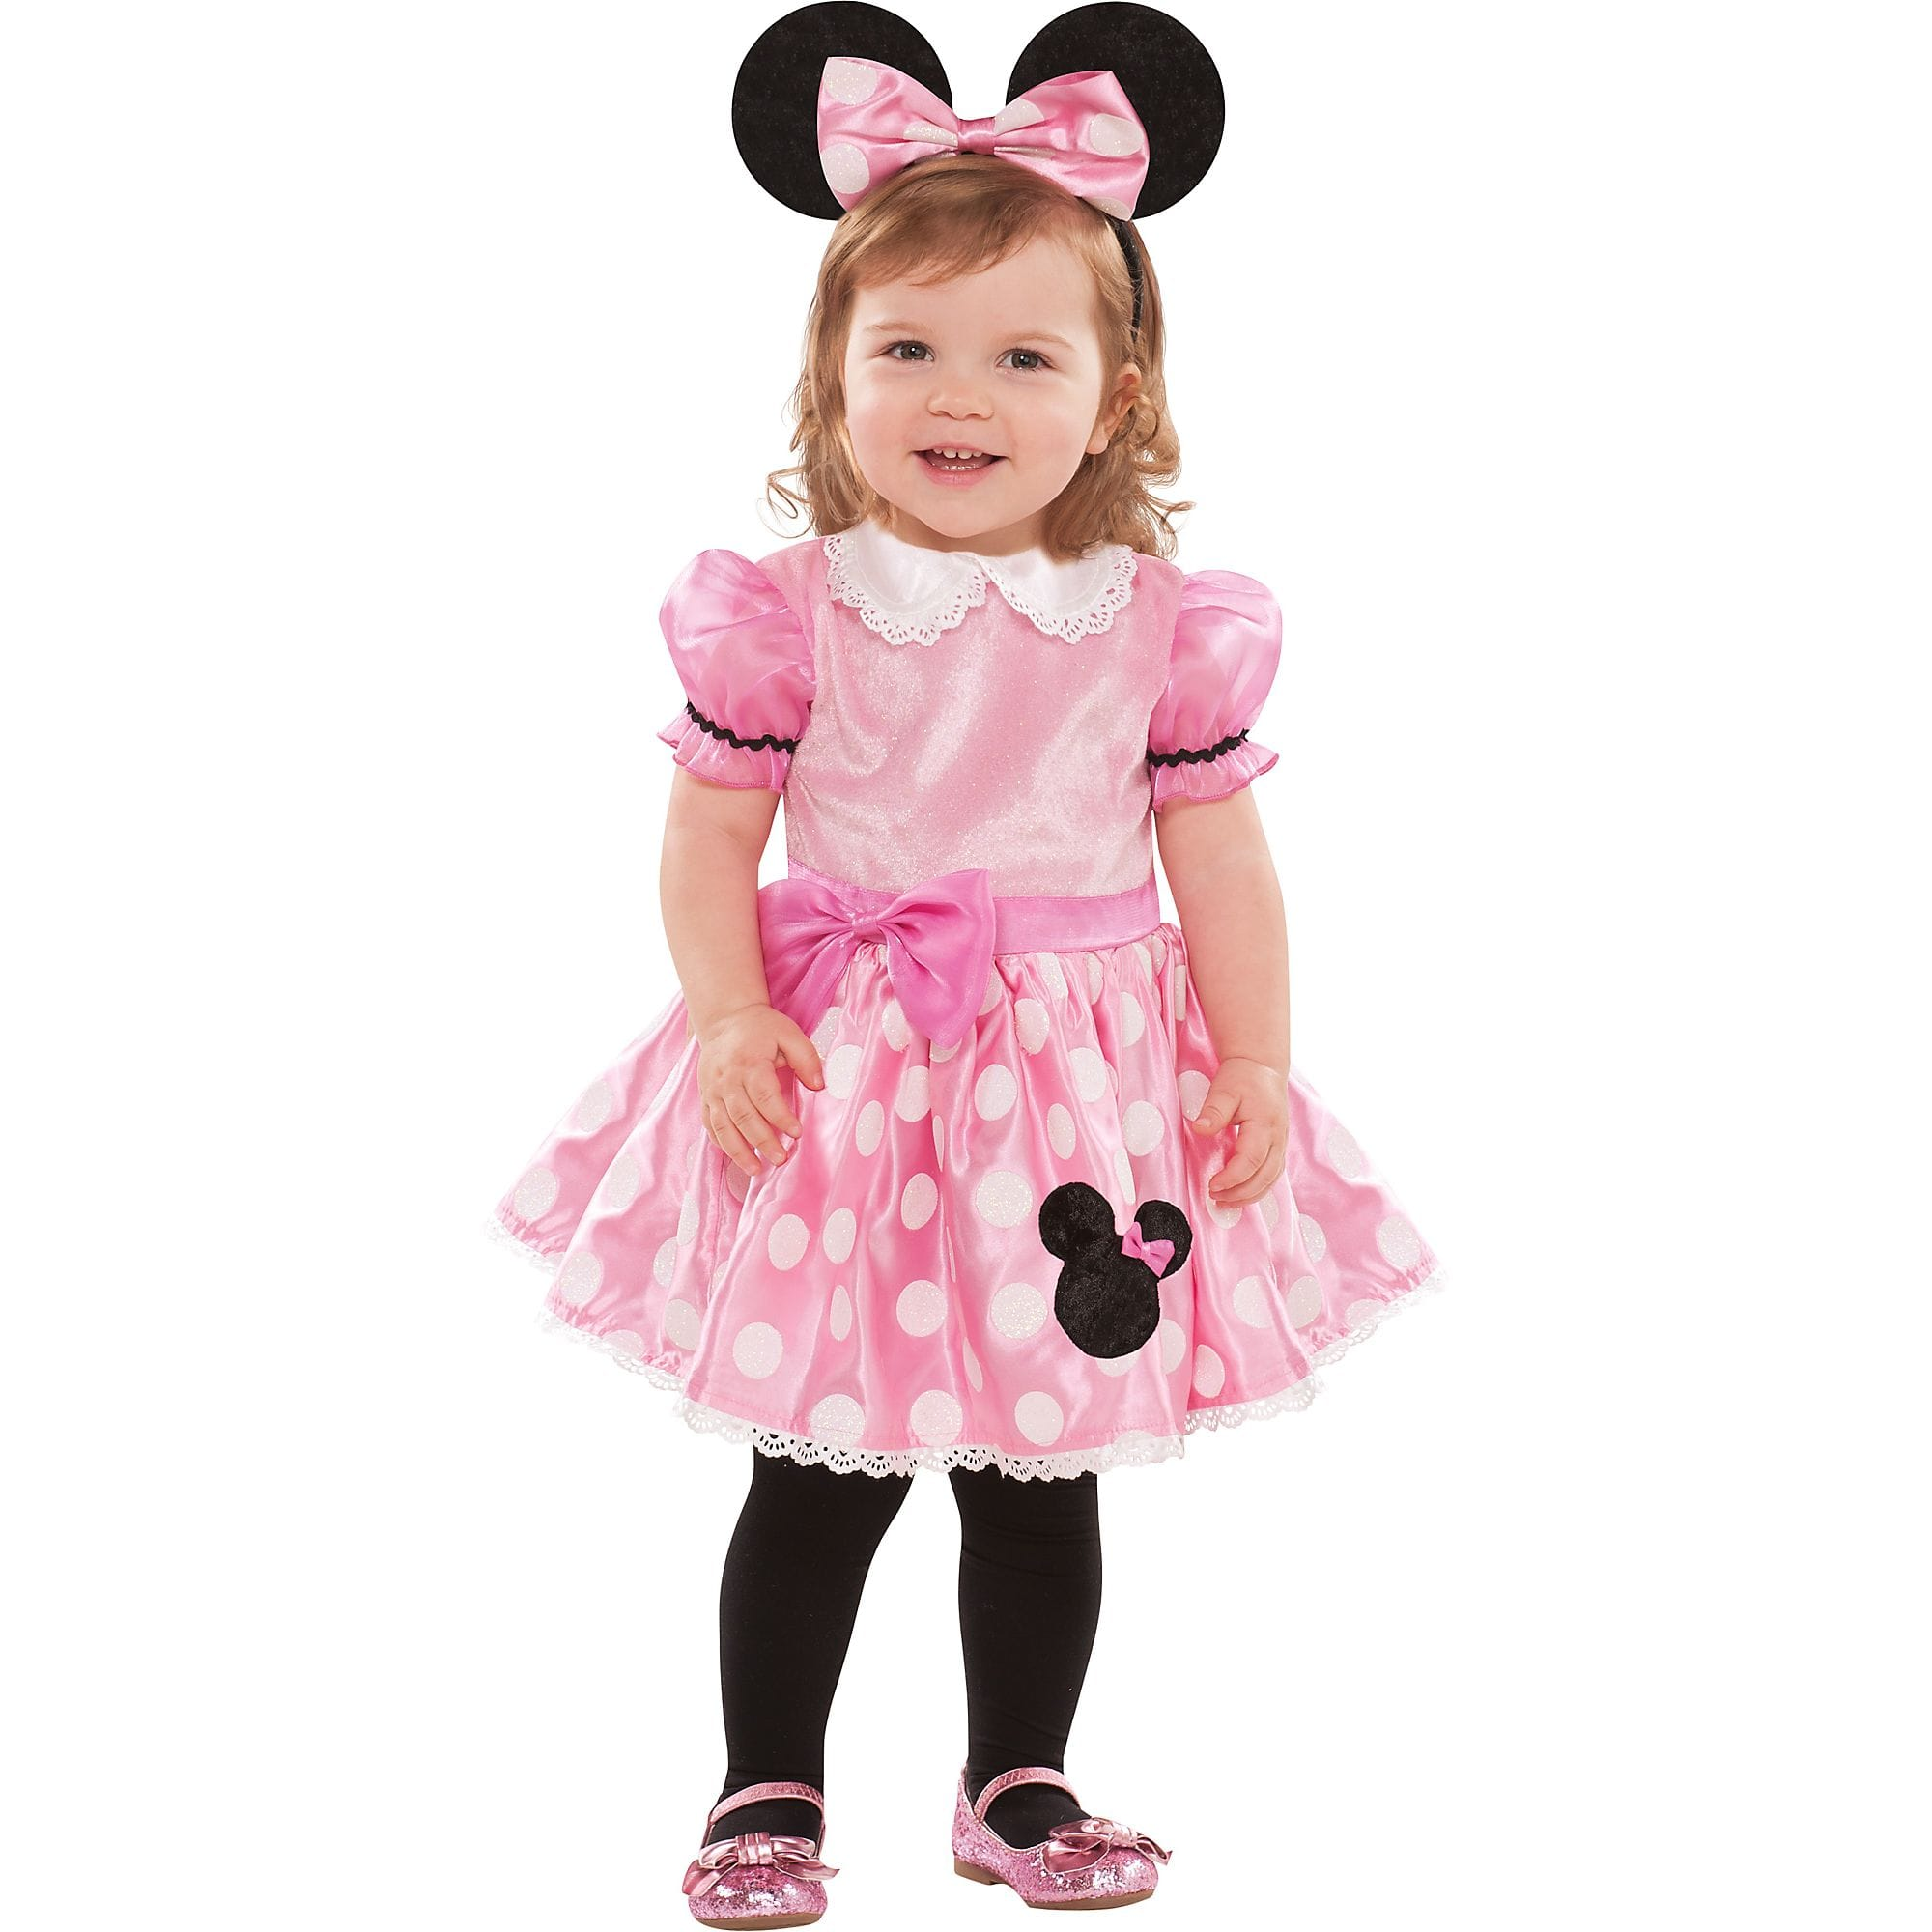 20 Off Disney Costumes Accessories Starting At 19 99